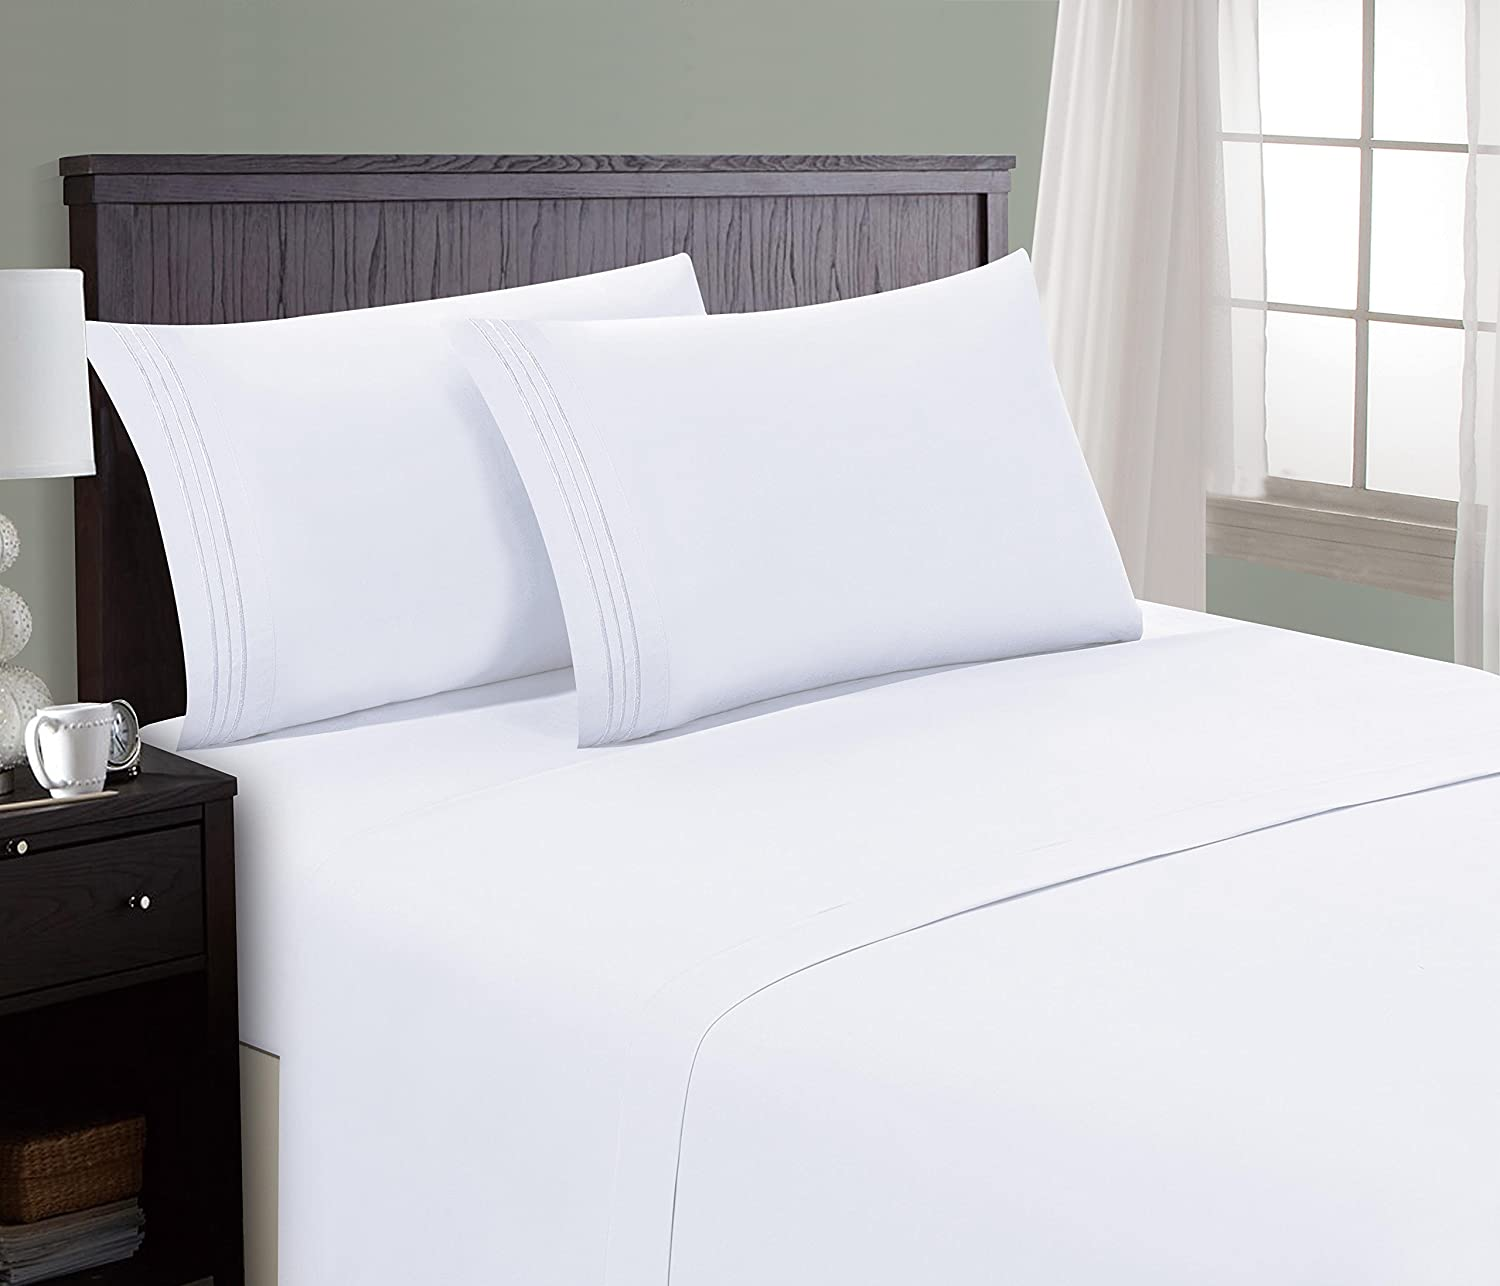 HC Collection Bed Sheet & Pillowcase Set HOTEL LUXURY 1800 Series Egyptian Quality Bedding Collection